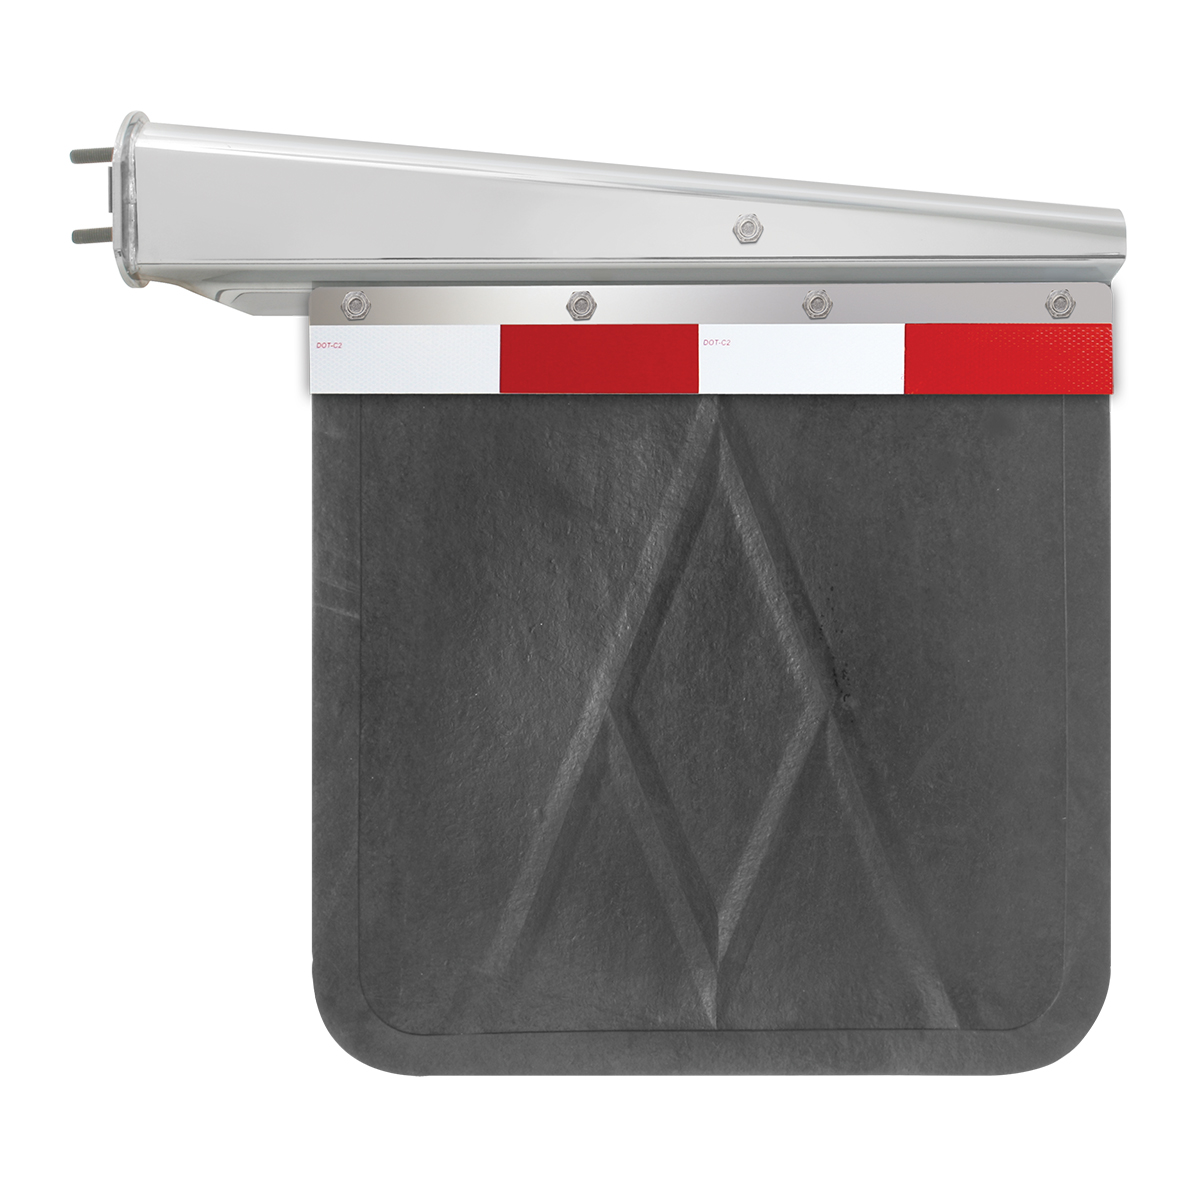 Straight Aluminum Reflector Top Plate - Mud Flap View